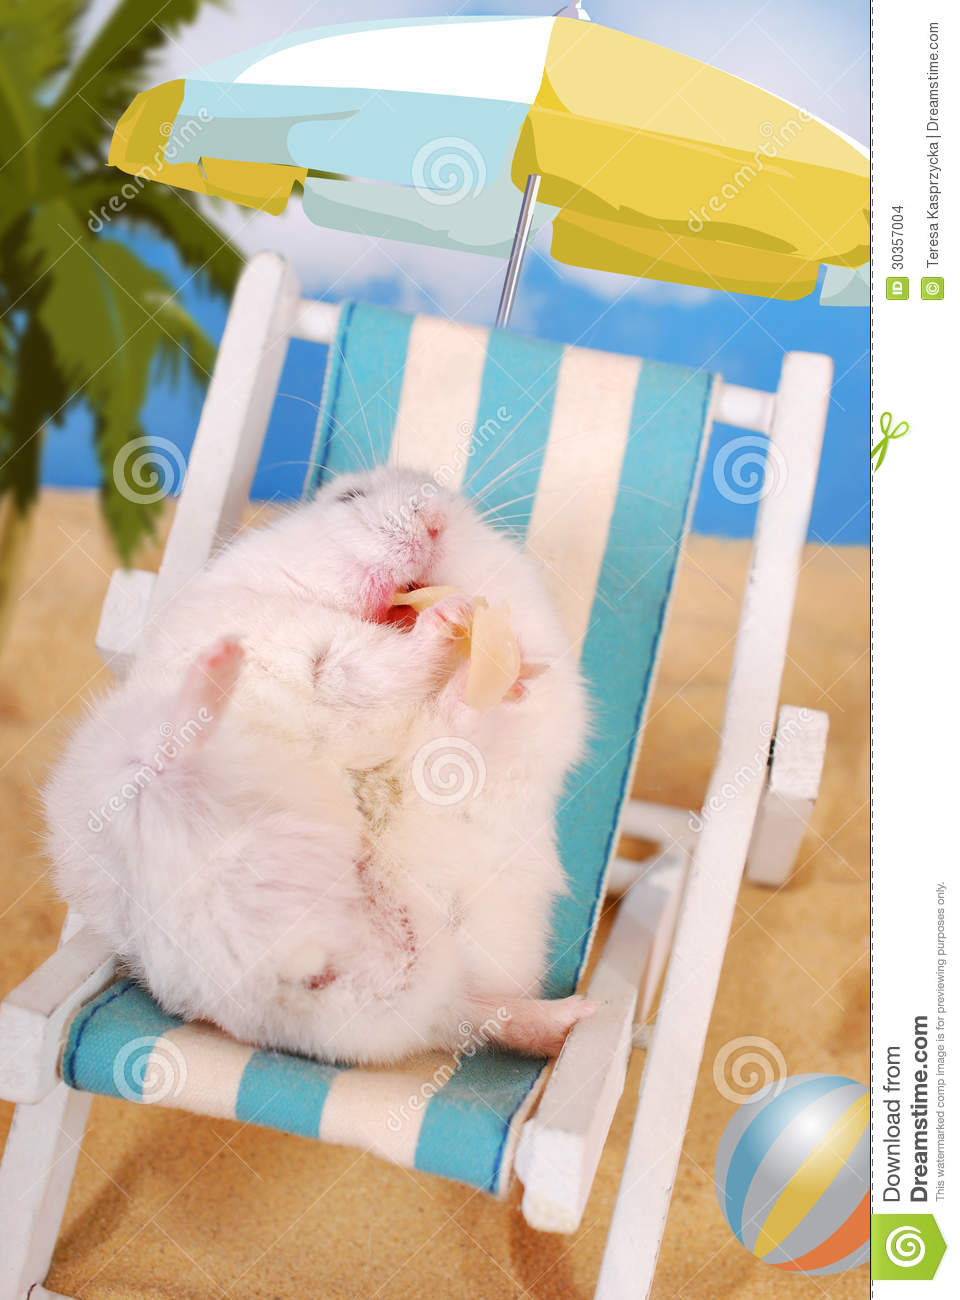 Beach Sand Chair Lazy Summer Holidays Stock Images - Image: 30357004